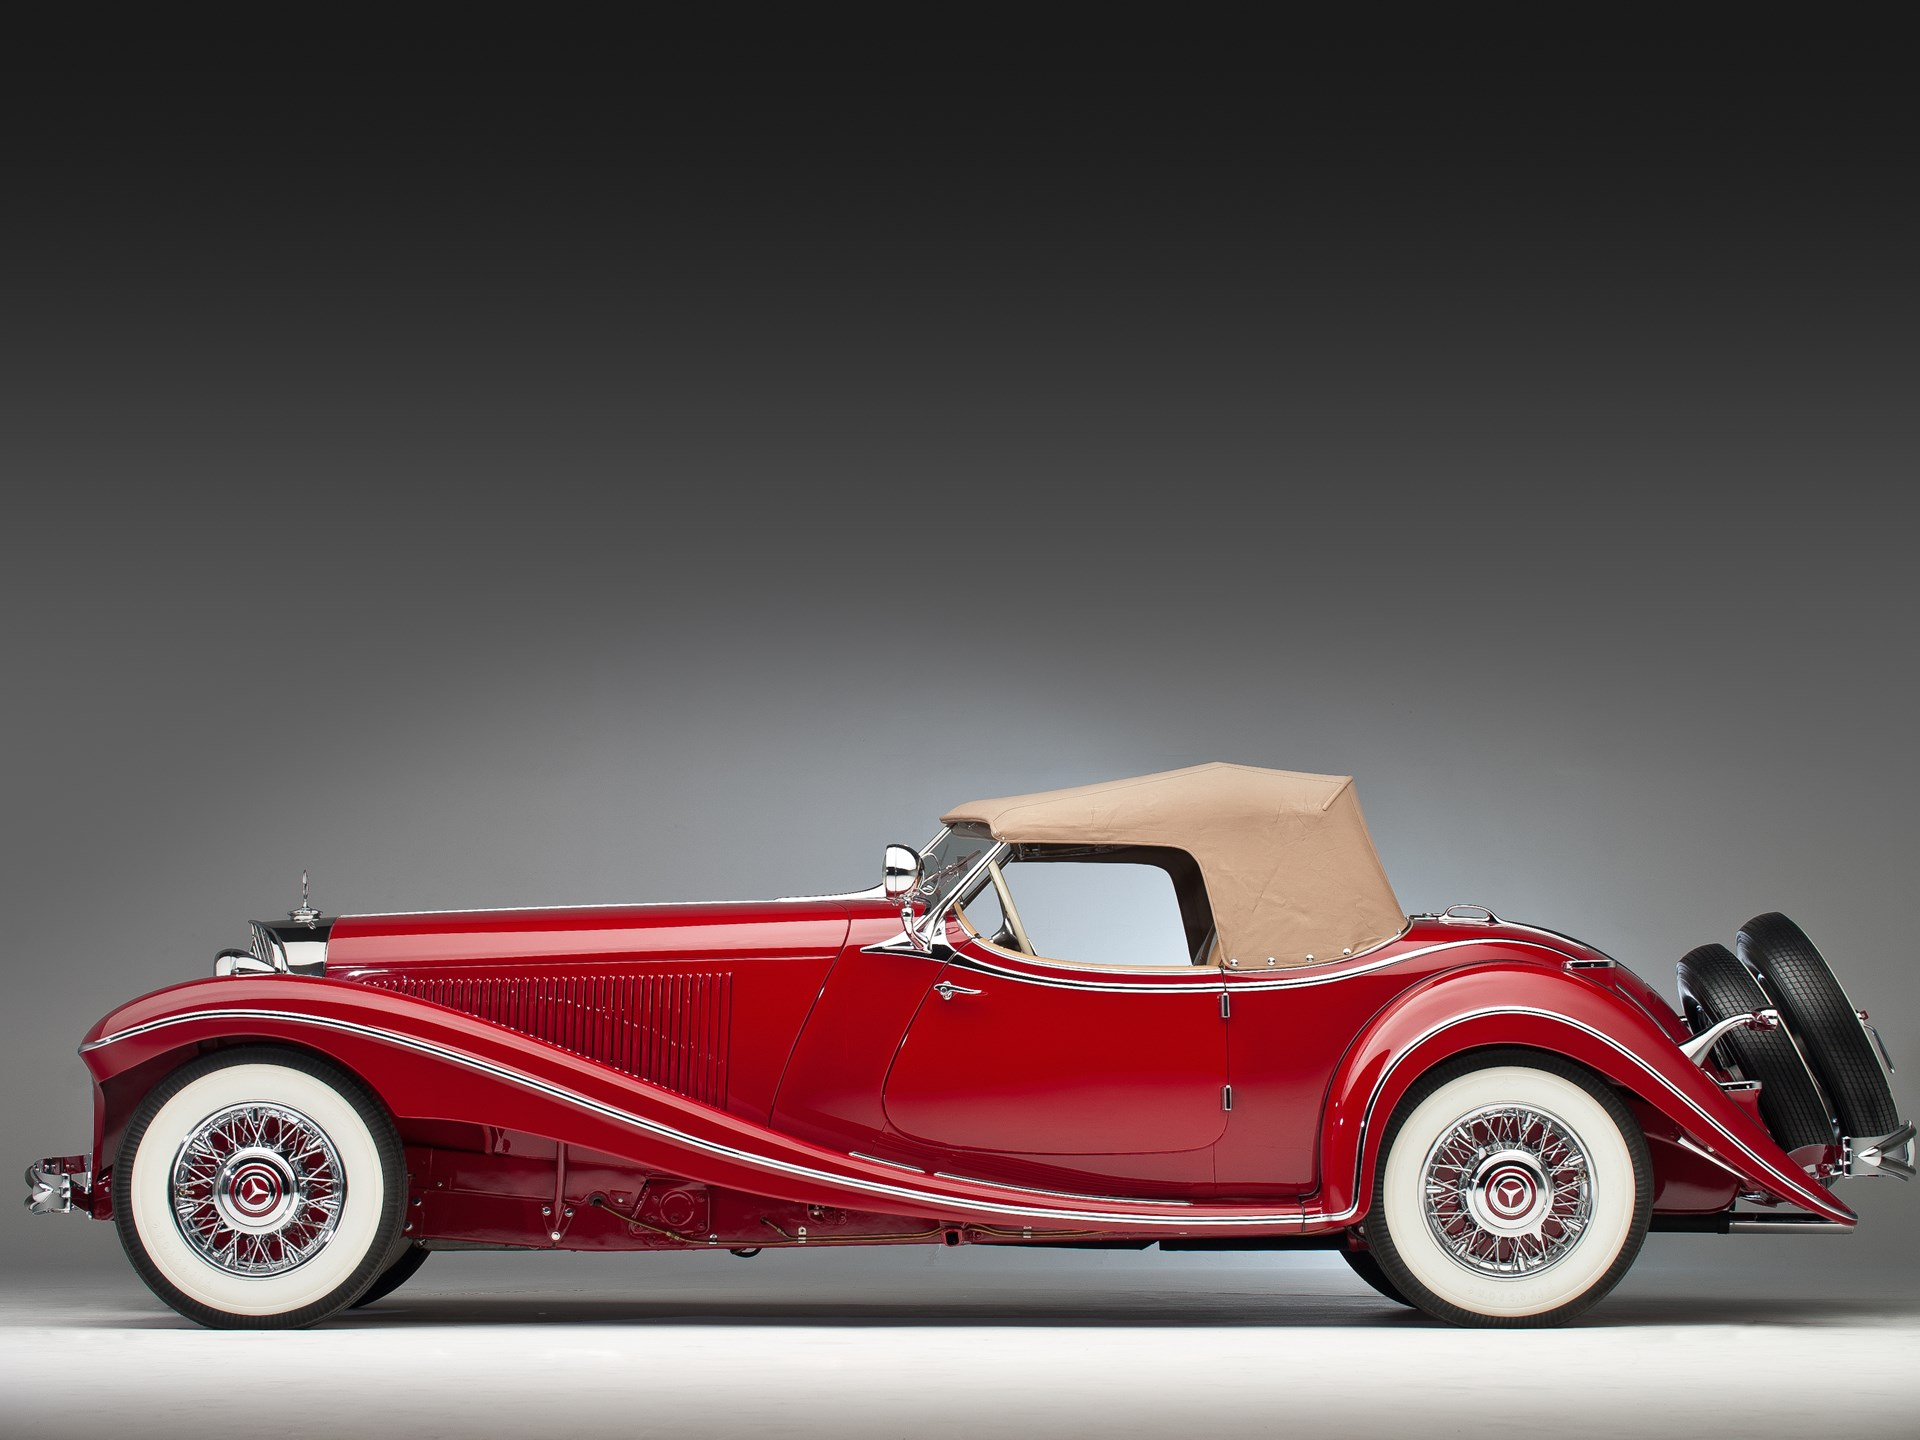 1935 Mercedes-Benz 500k side profile